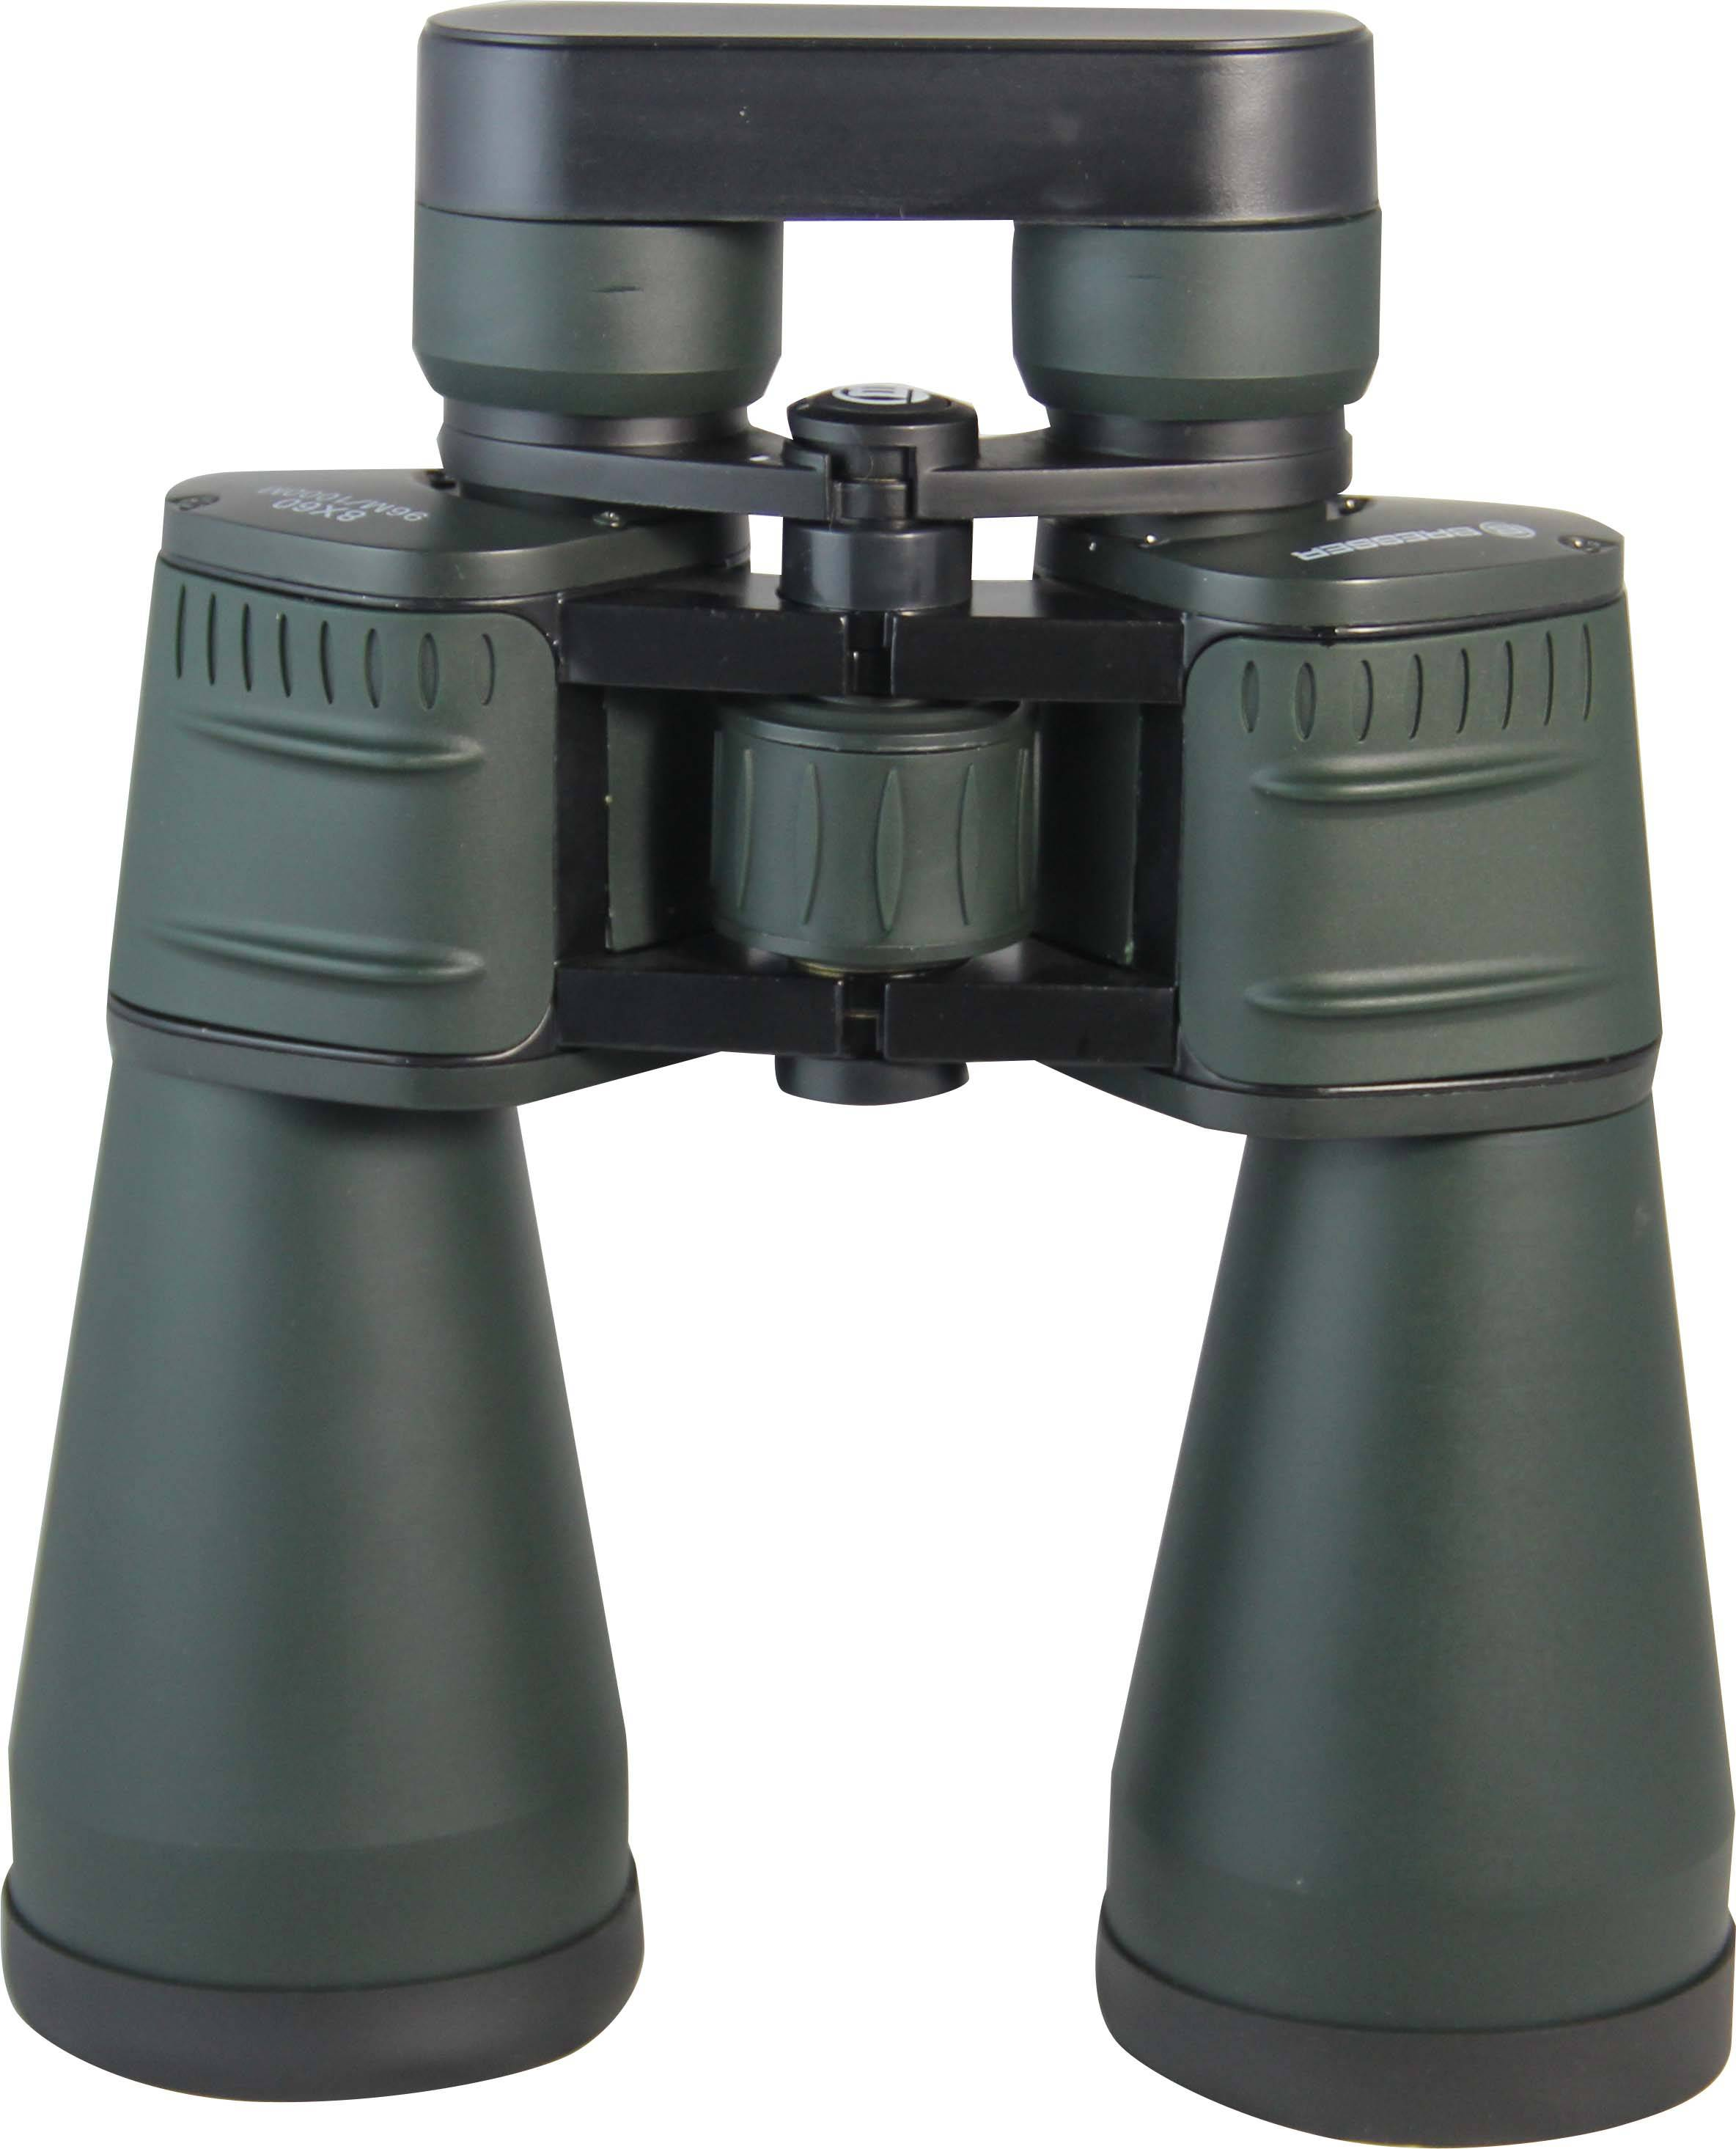 8X60 Long Eye Relief Binoculars (BM-5011)